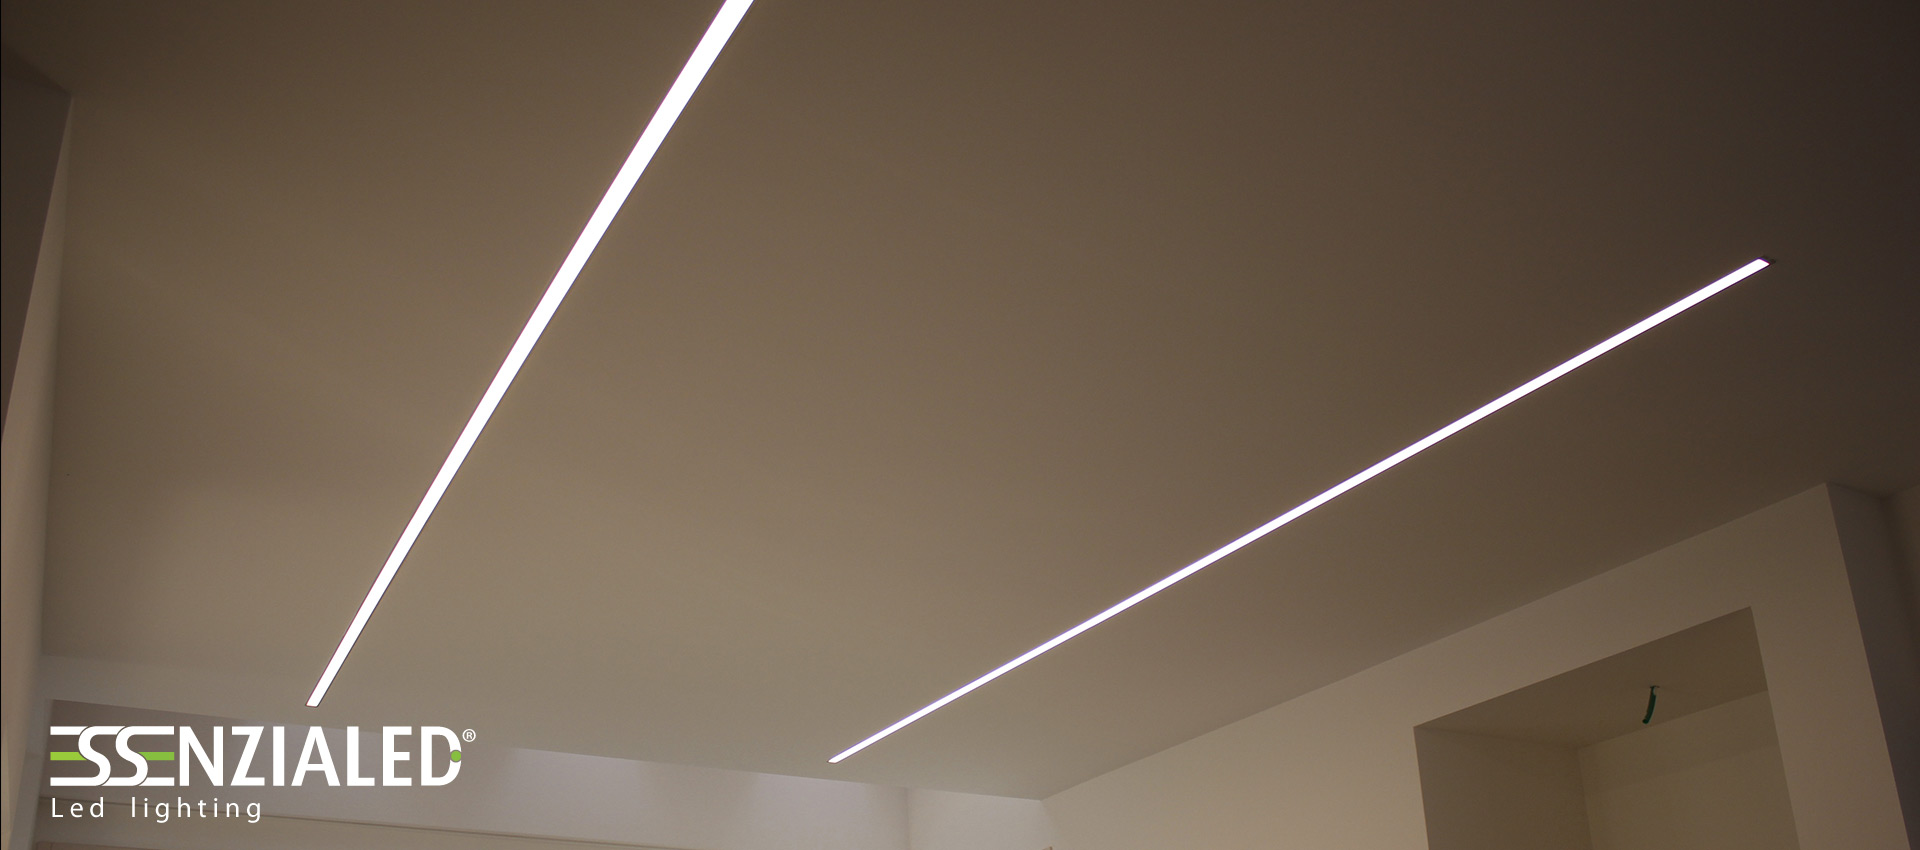 Luci led controsoffitto uv55 regardsdefemmes for Luci led per casa